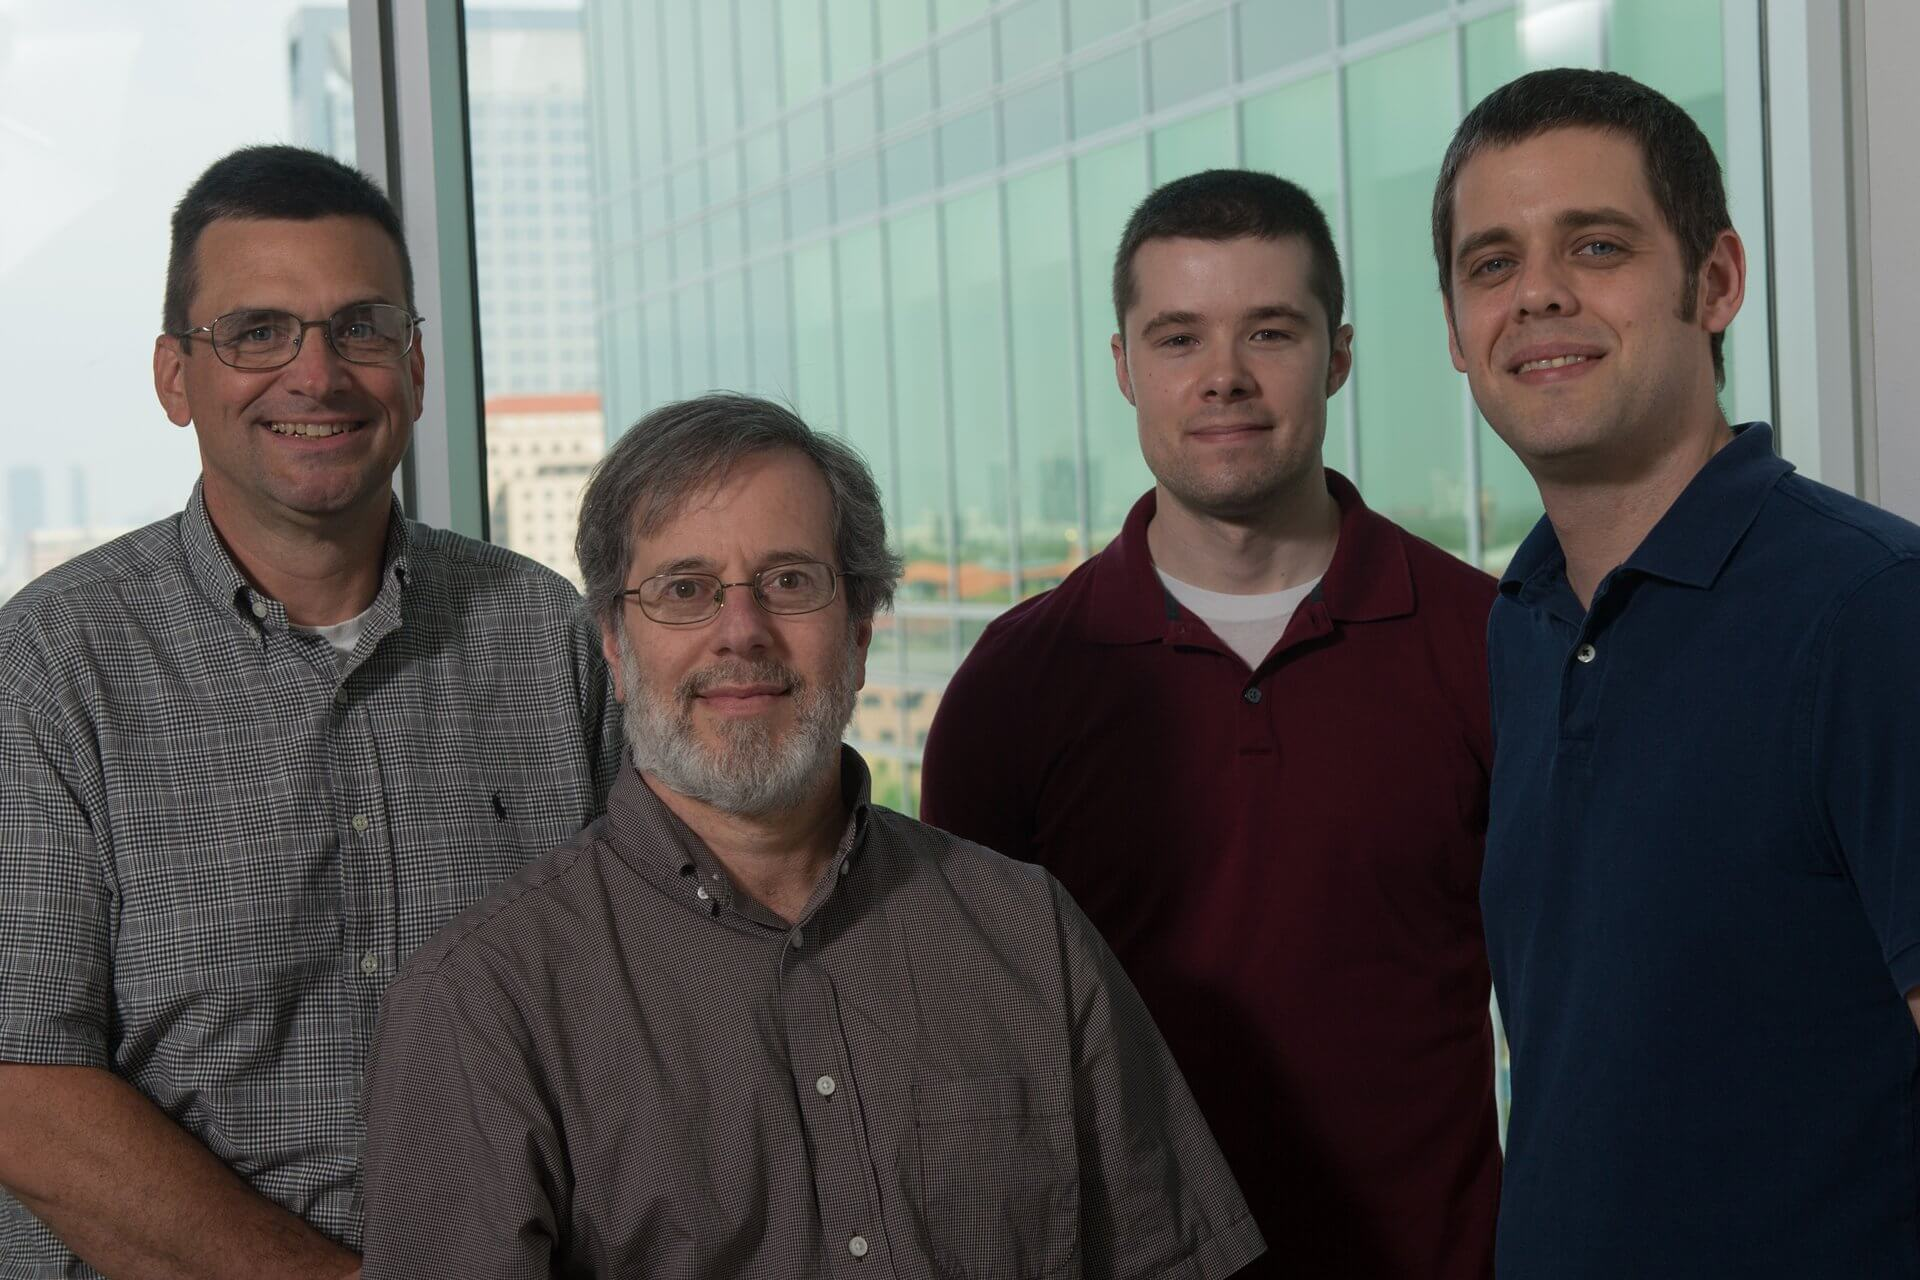 Rice University biochemists James McNew, Michael Stern, James Summerville and Joseph Faust